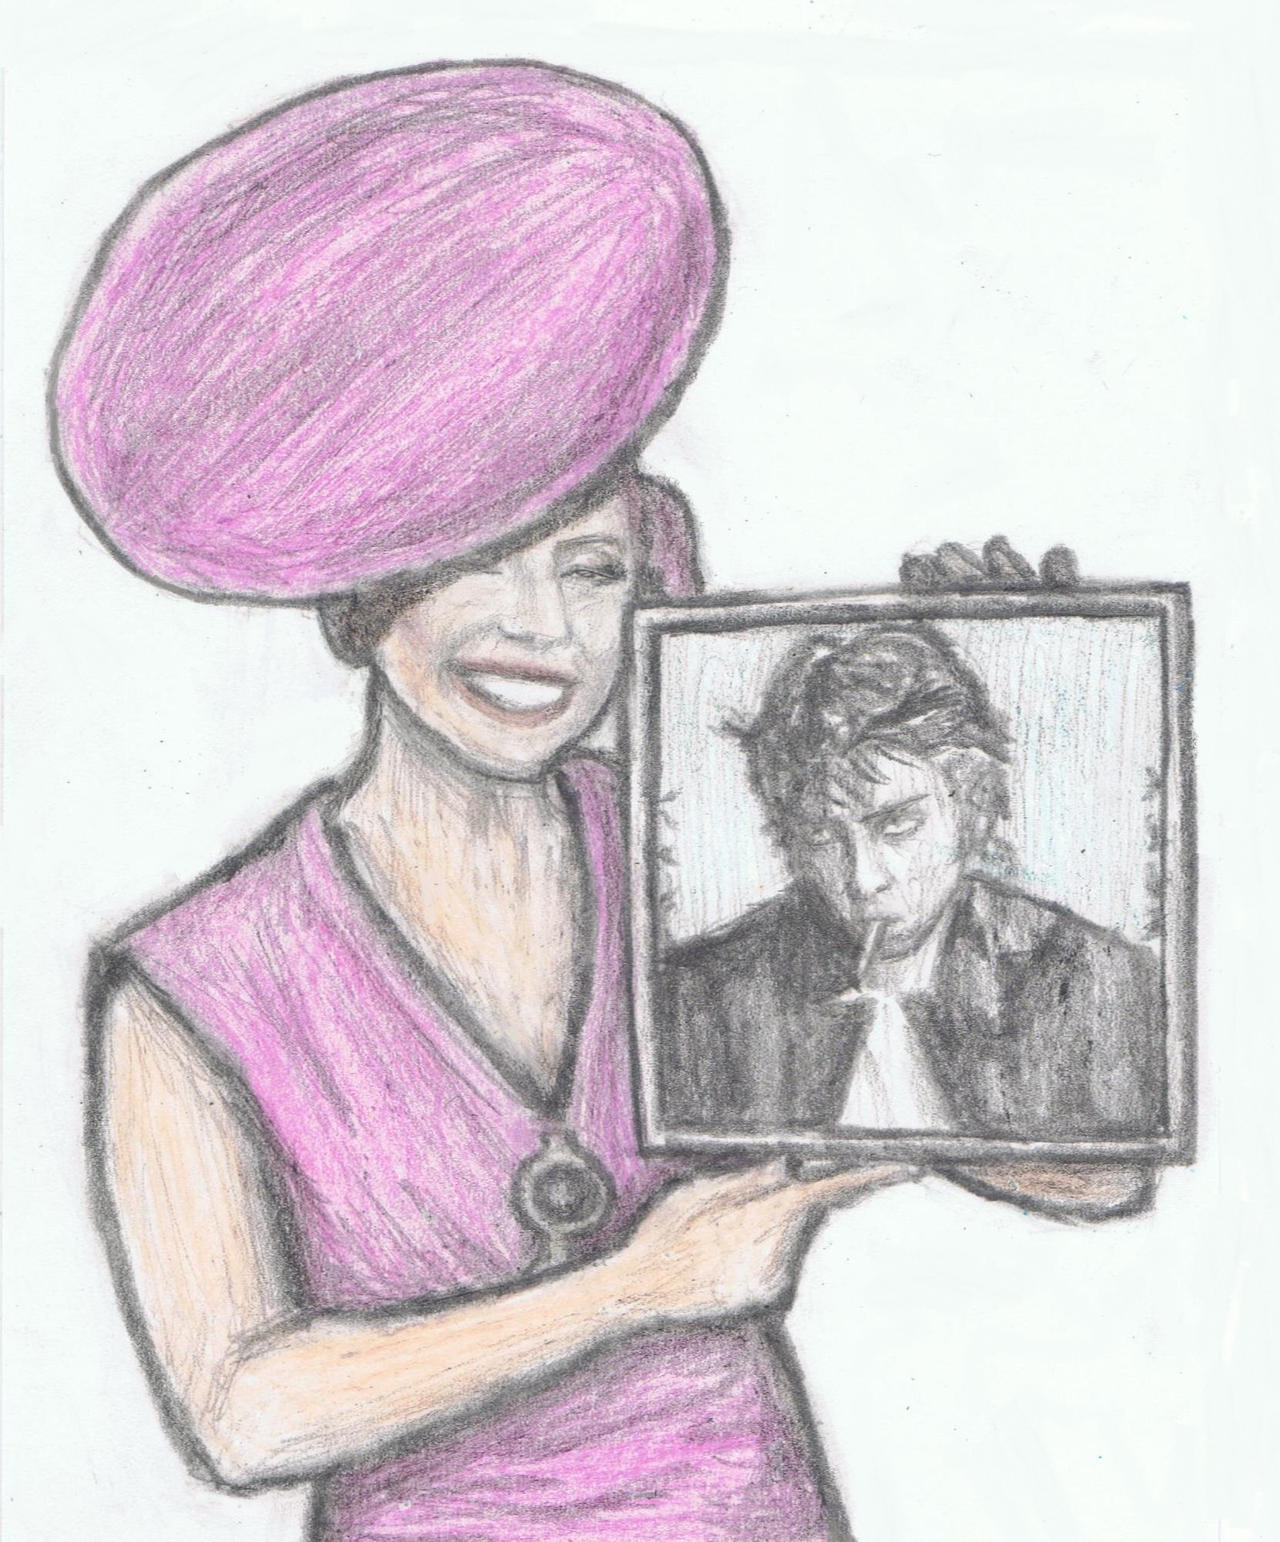 Lady Gaga with a framed photo of Jo Calderone by gagambo